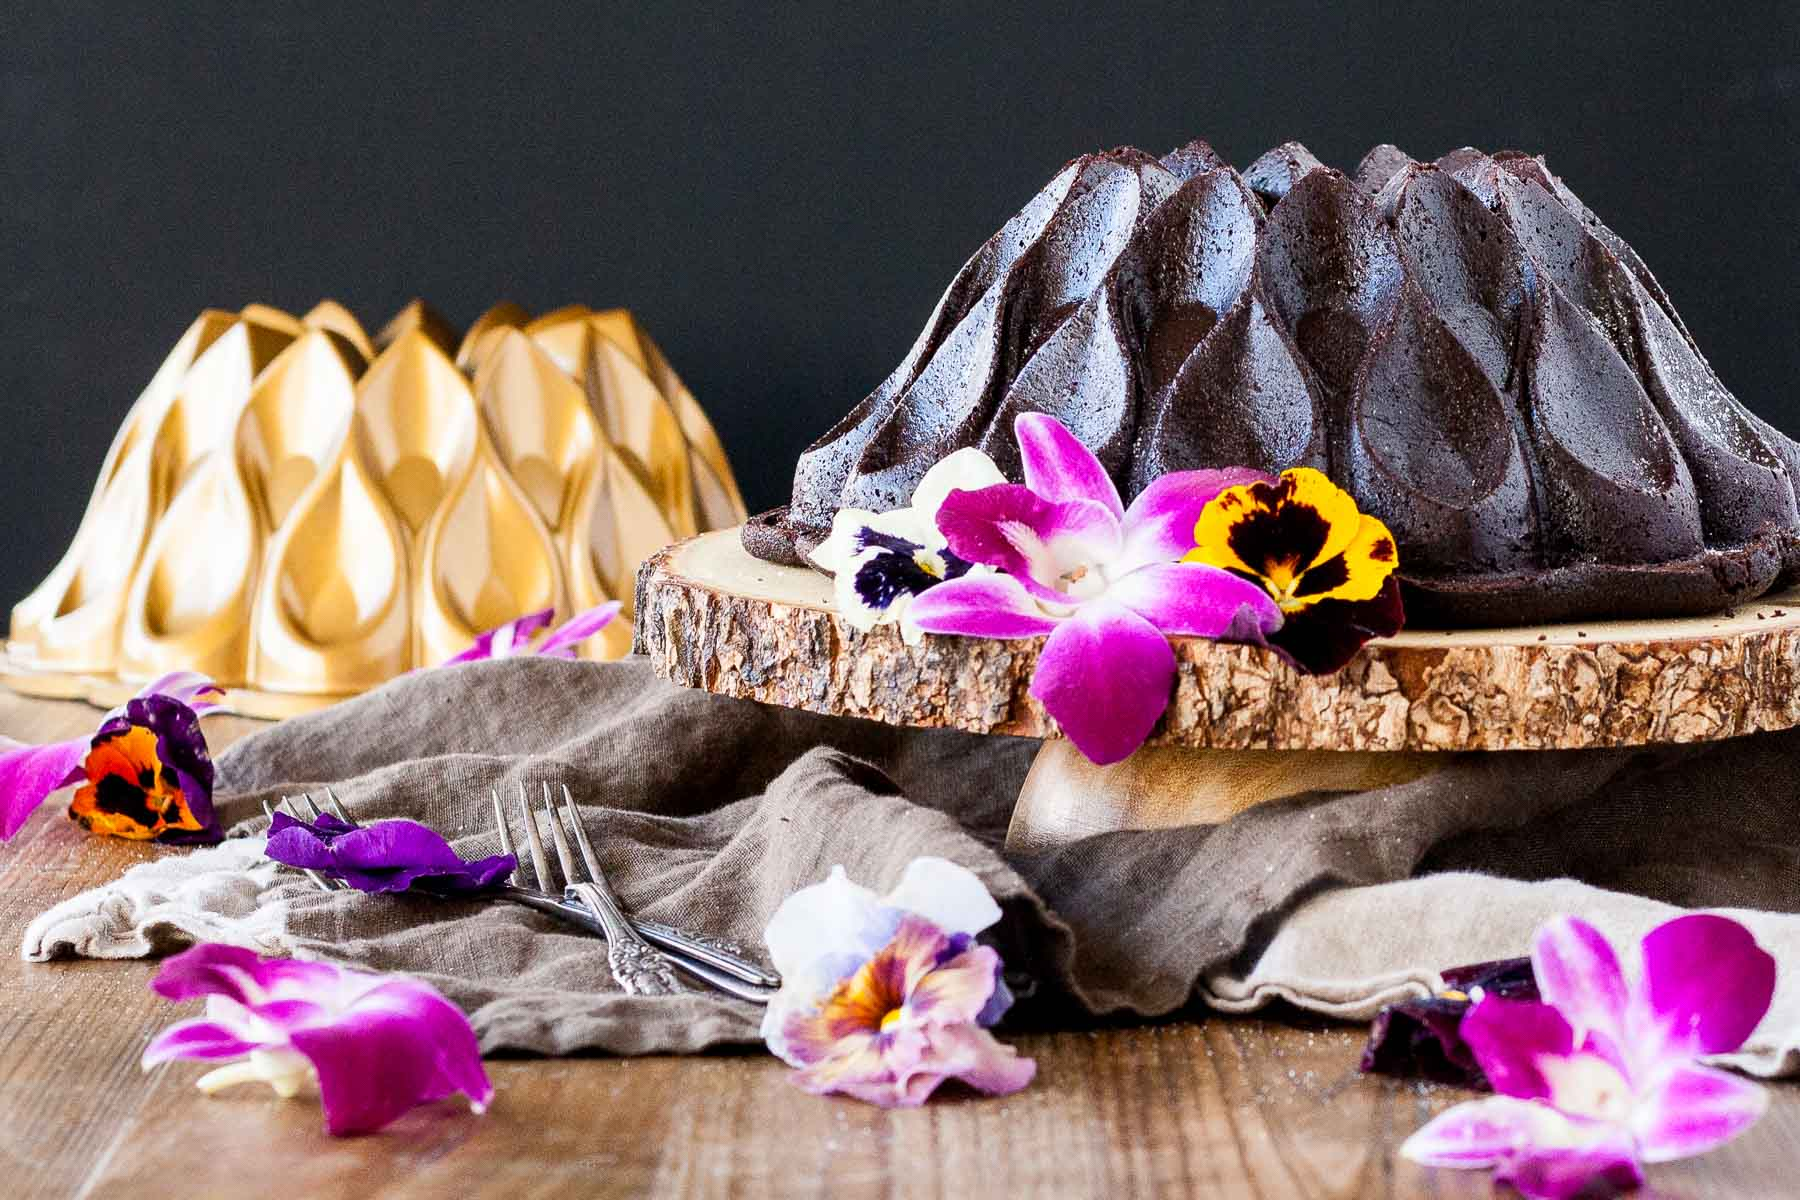 Chocolate Bundt cake on a wooden cake stand garnished with fresh edible flowers. Gold bundt pan in the background.